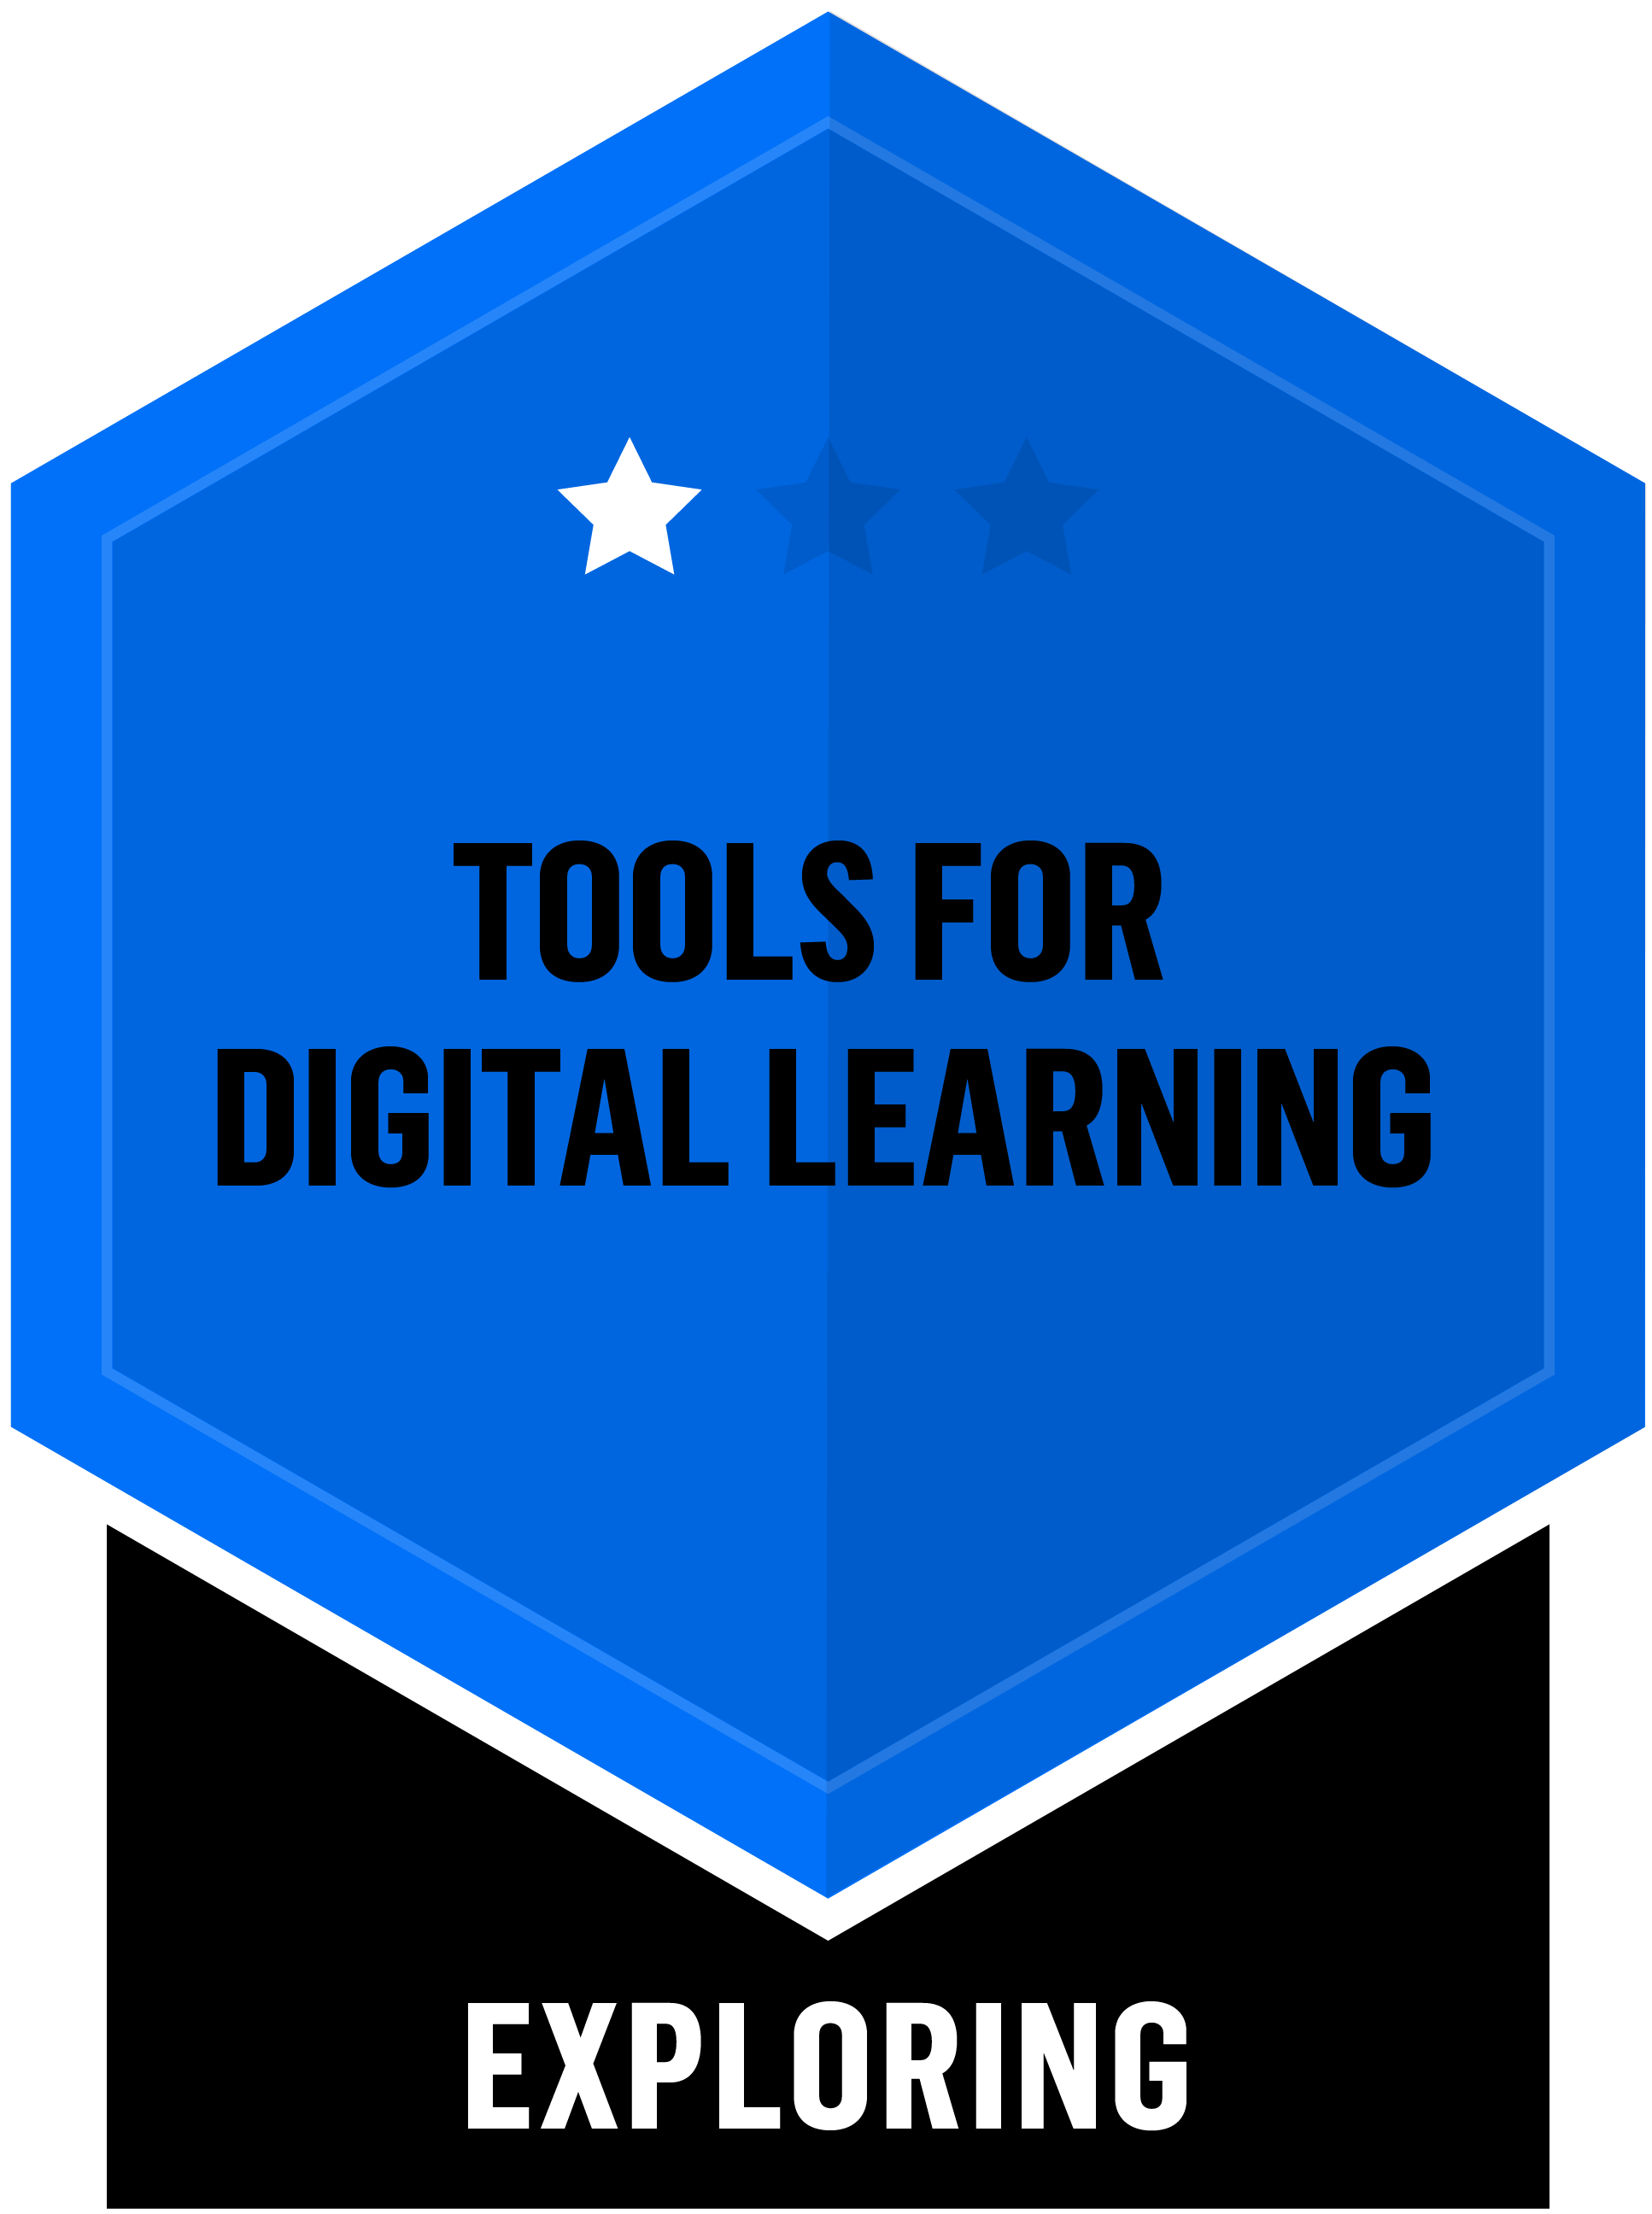 Tools for digital learning - Exploring